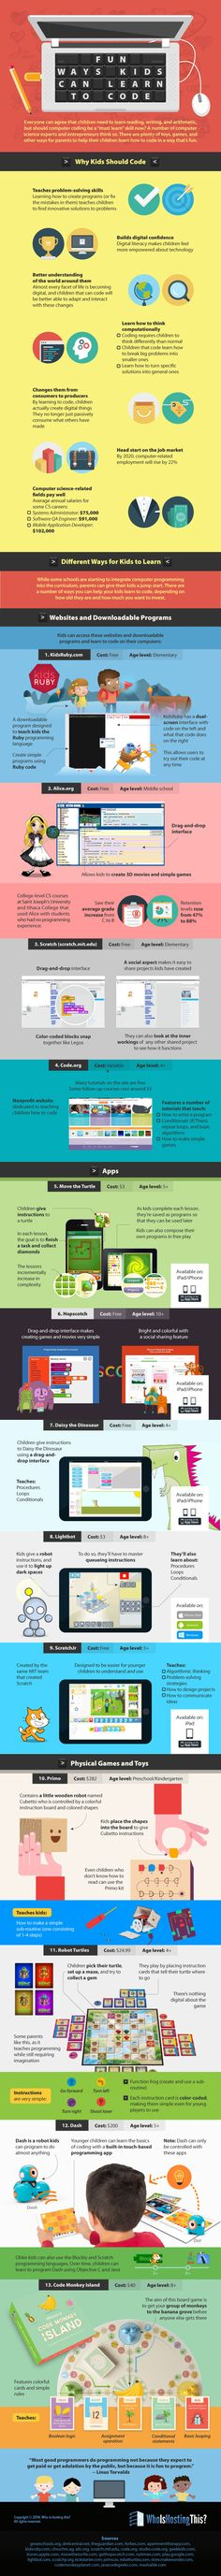 Fun Ways Kids Can Learn to Code #infographic #Education #Coding